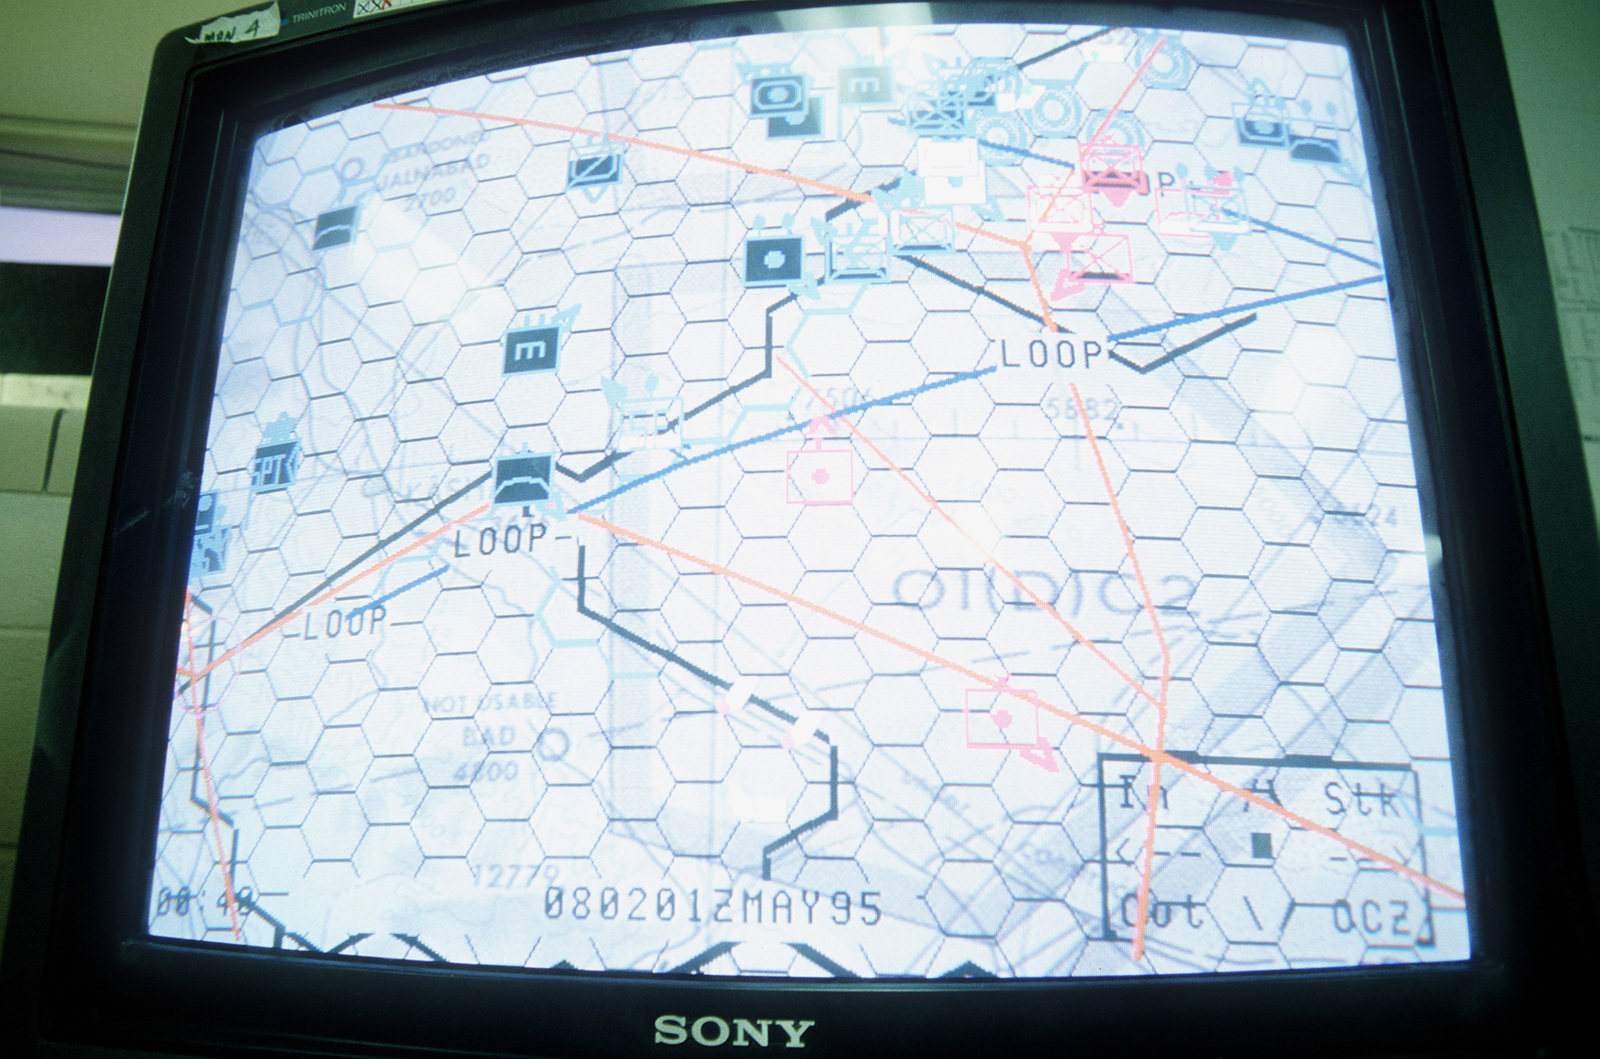 A close-up view of a computer monitor display that shows the grid for special operations forces, coalition forces, and fire control. Challenged by the desert environment and technical integration with a variety of other U.S. and multinational services for 10 days, personnel are participating in the largest air defense exercise in the free world